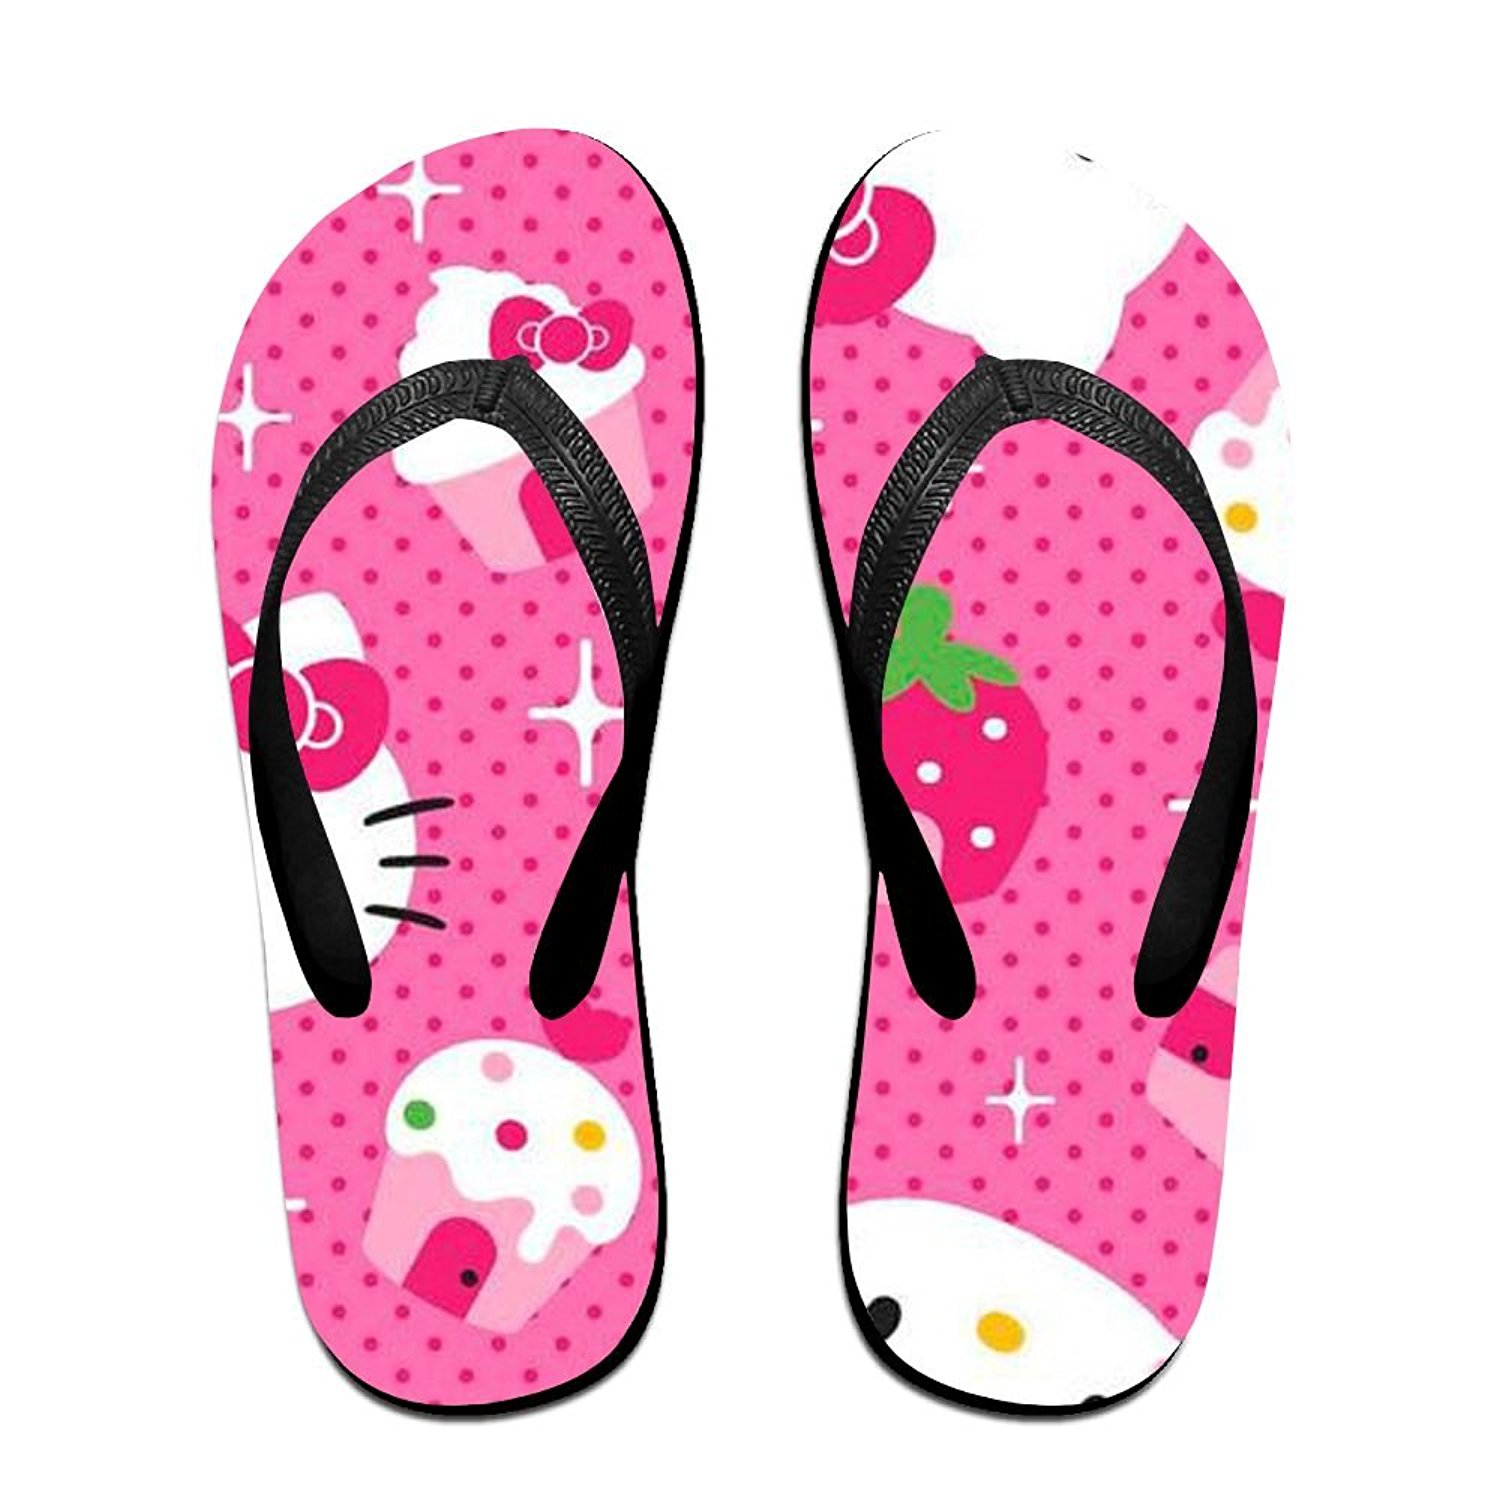 64d4b97d4 Get Quotations · Hello Kitty Cupcakes Non-slip Comfort Casual Personality  Trend Unisex Summer Beach Flip Flops